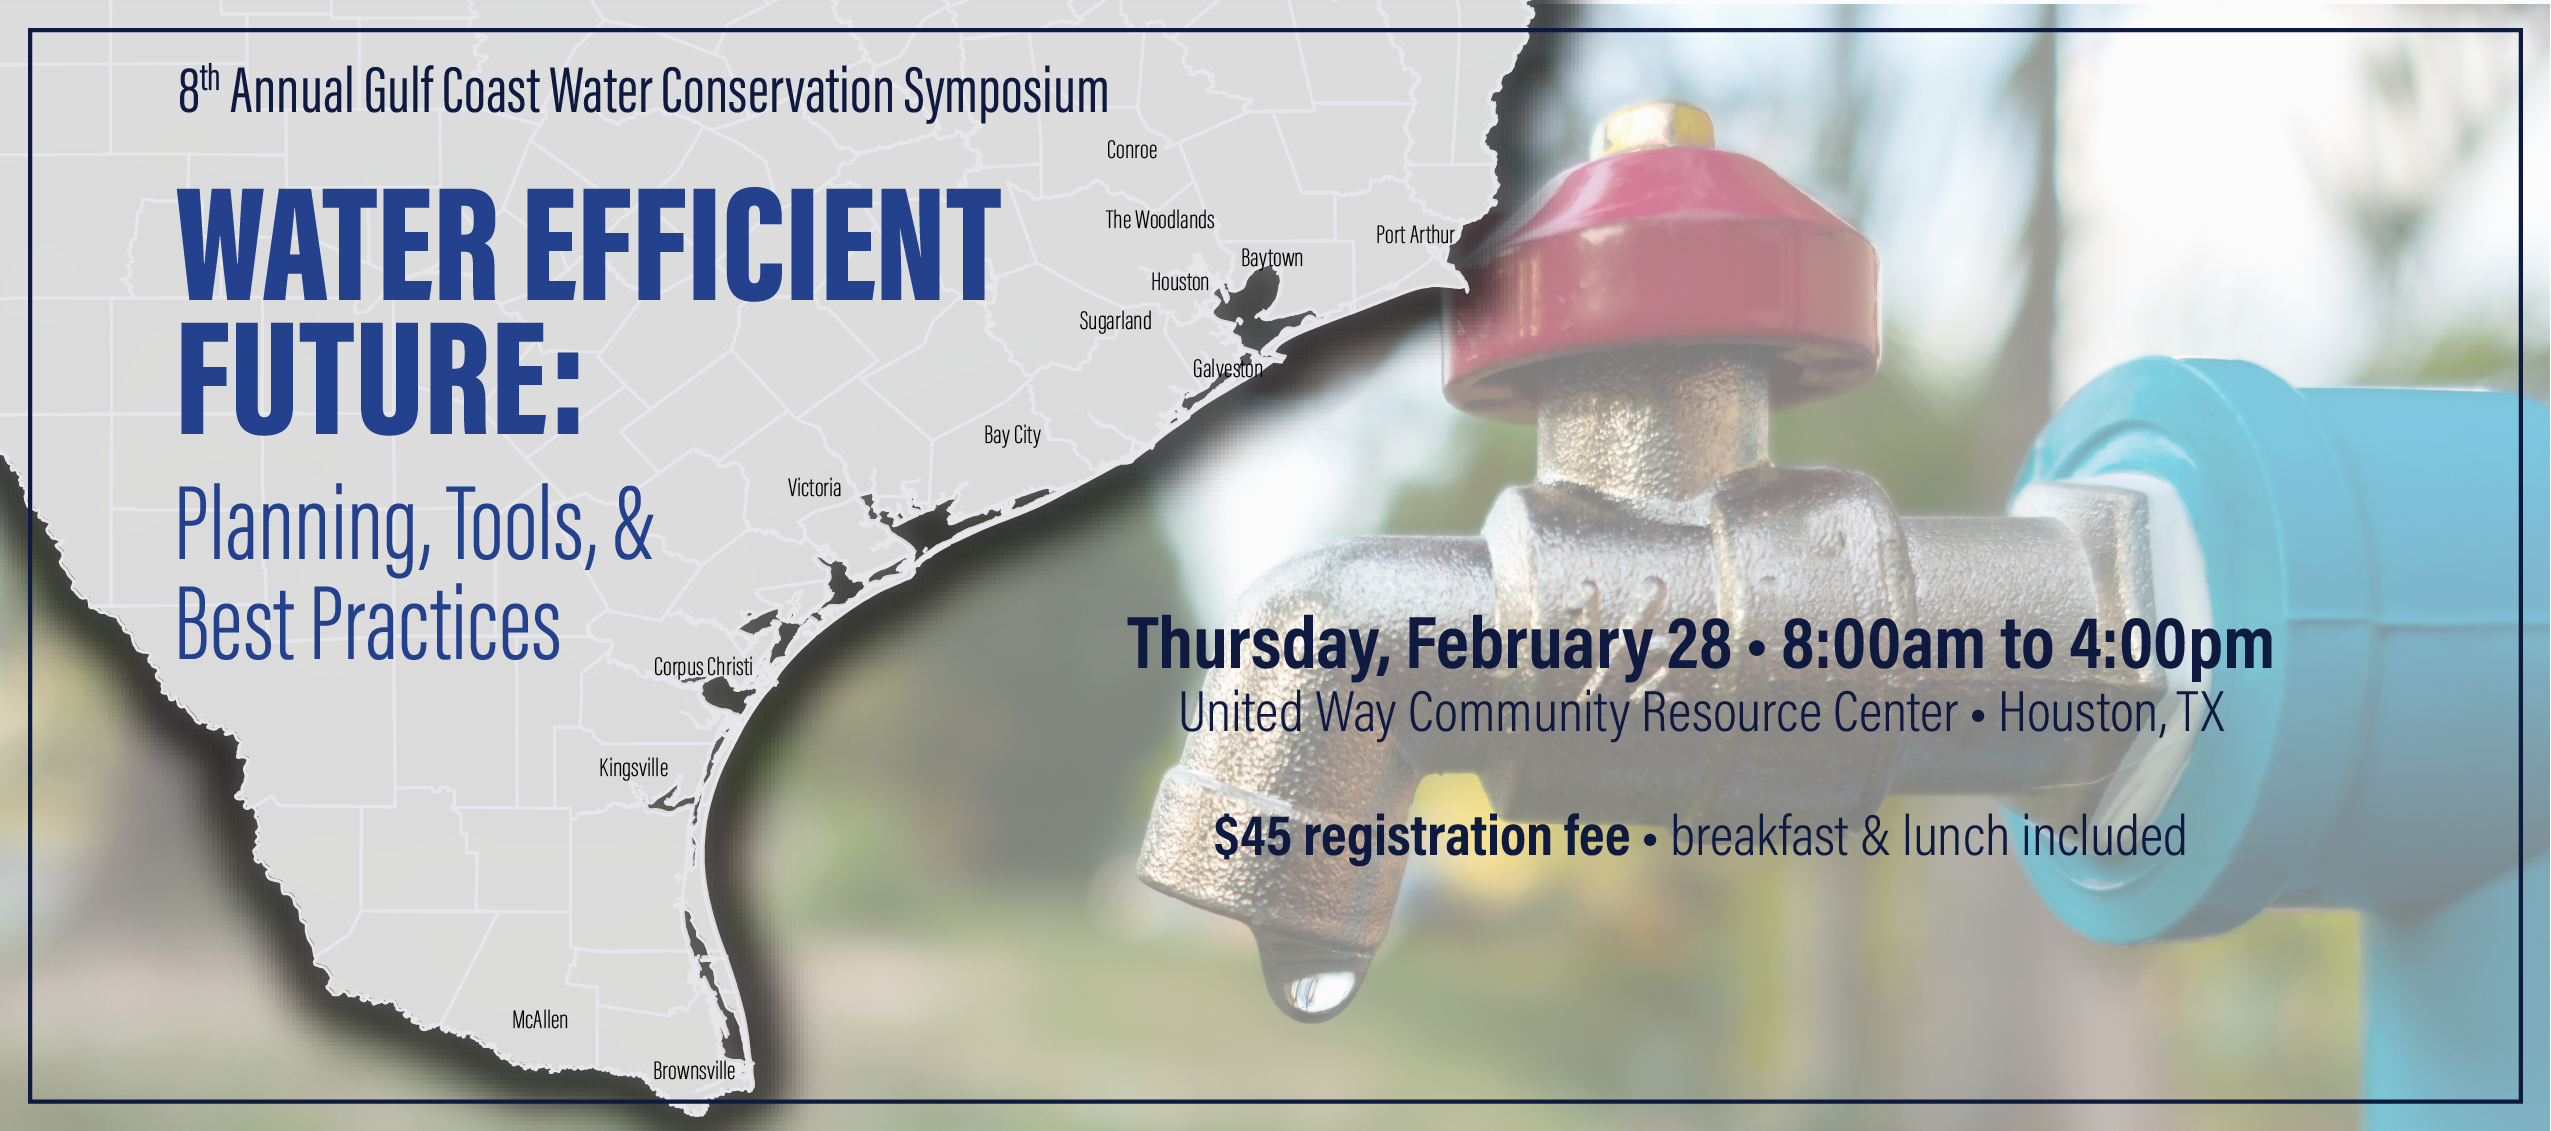 Gulf Coast Water Conservation Symposium 2019